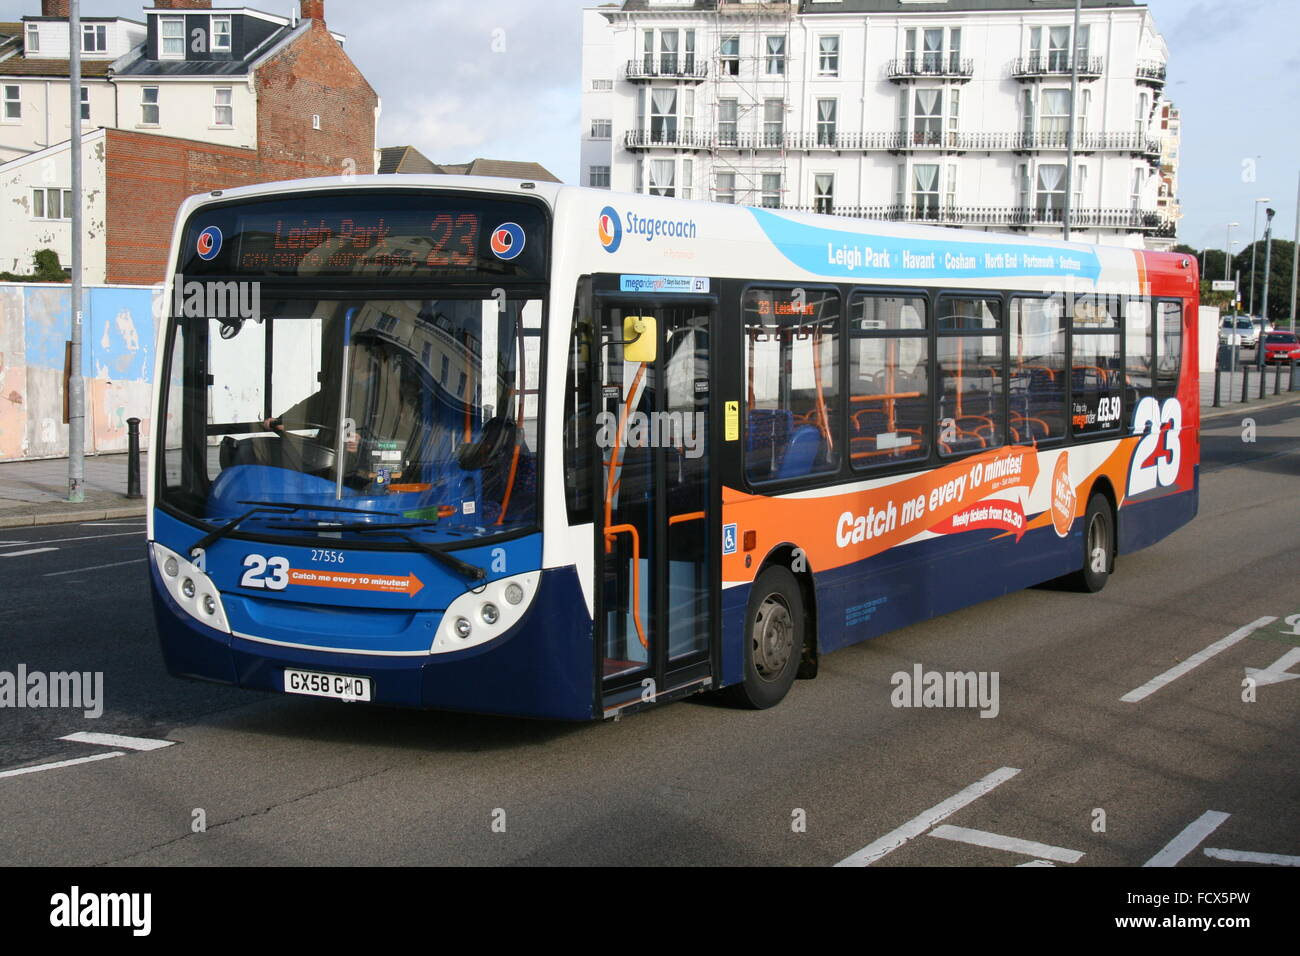 alexander dennis adl enviro bus operated by stagecoach